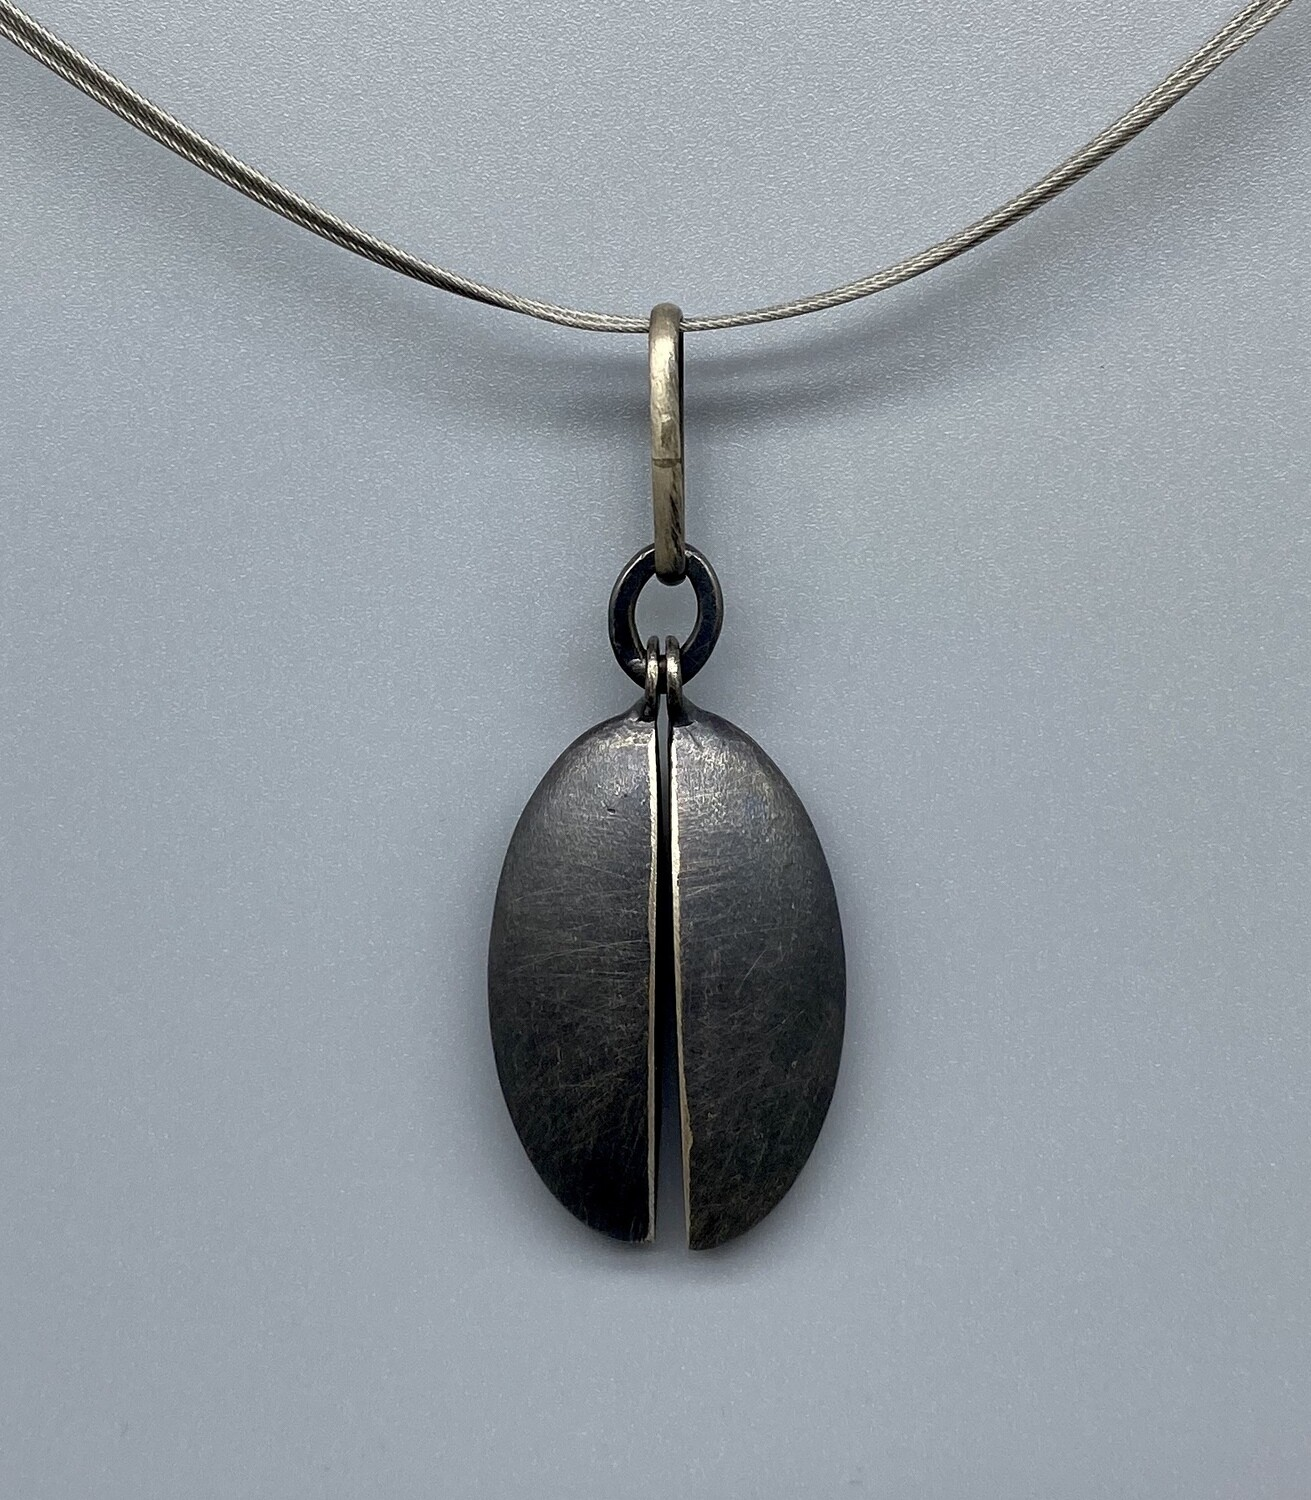 Brushed Oxidized Sterling Silver Leaf Charms Necklace